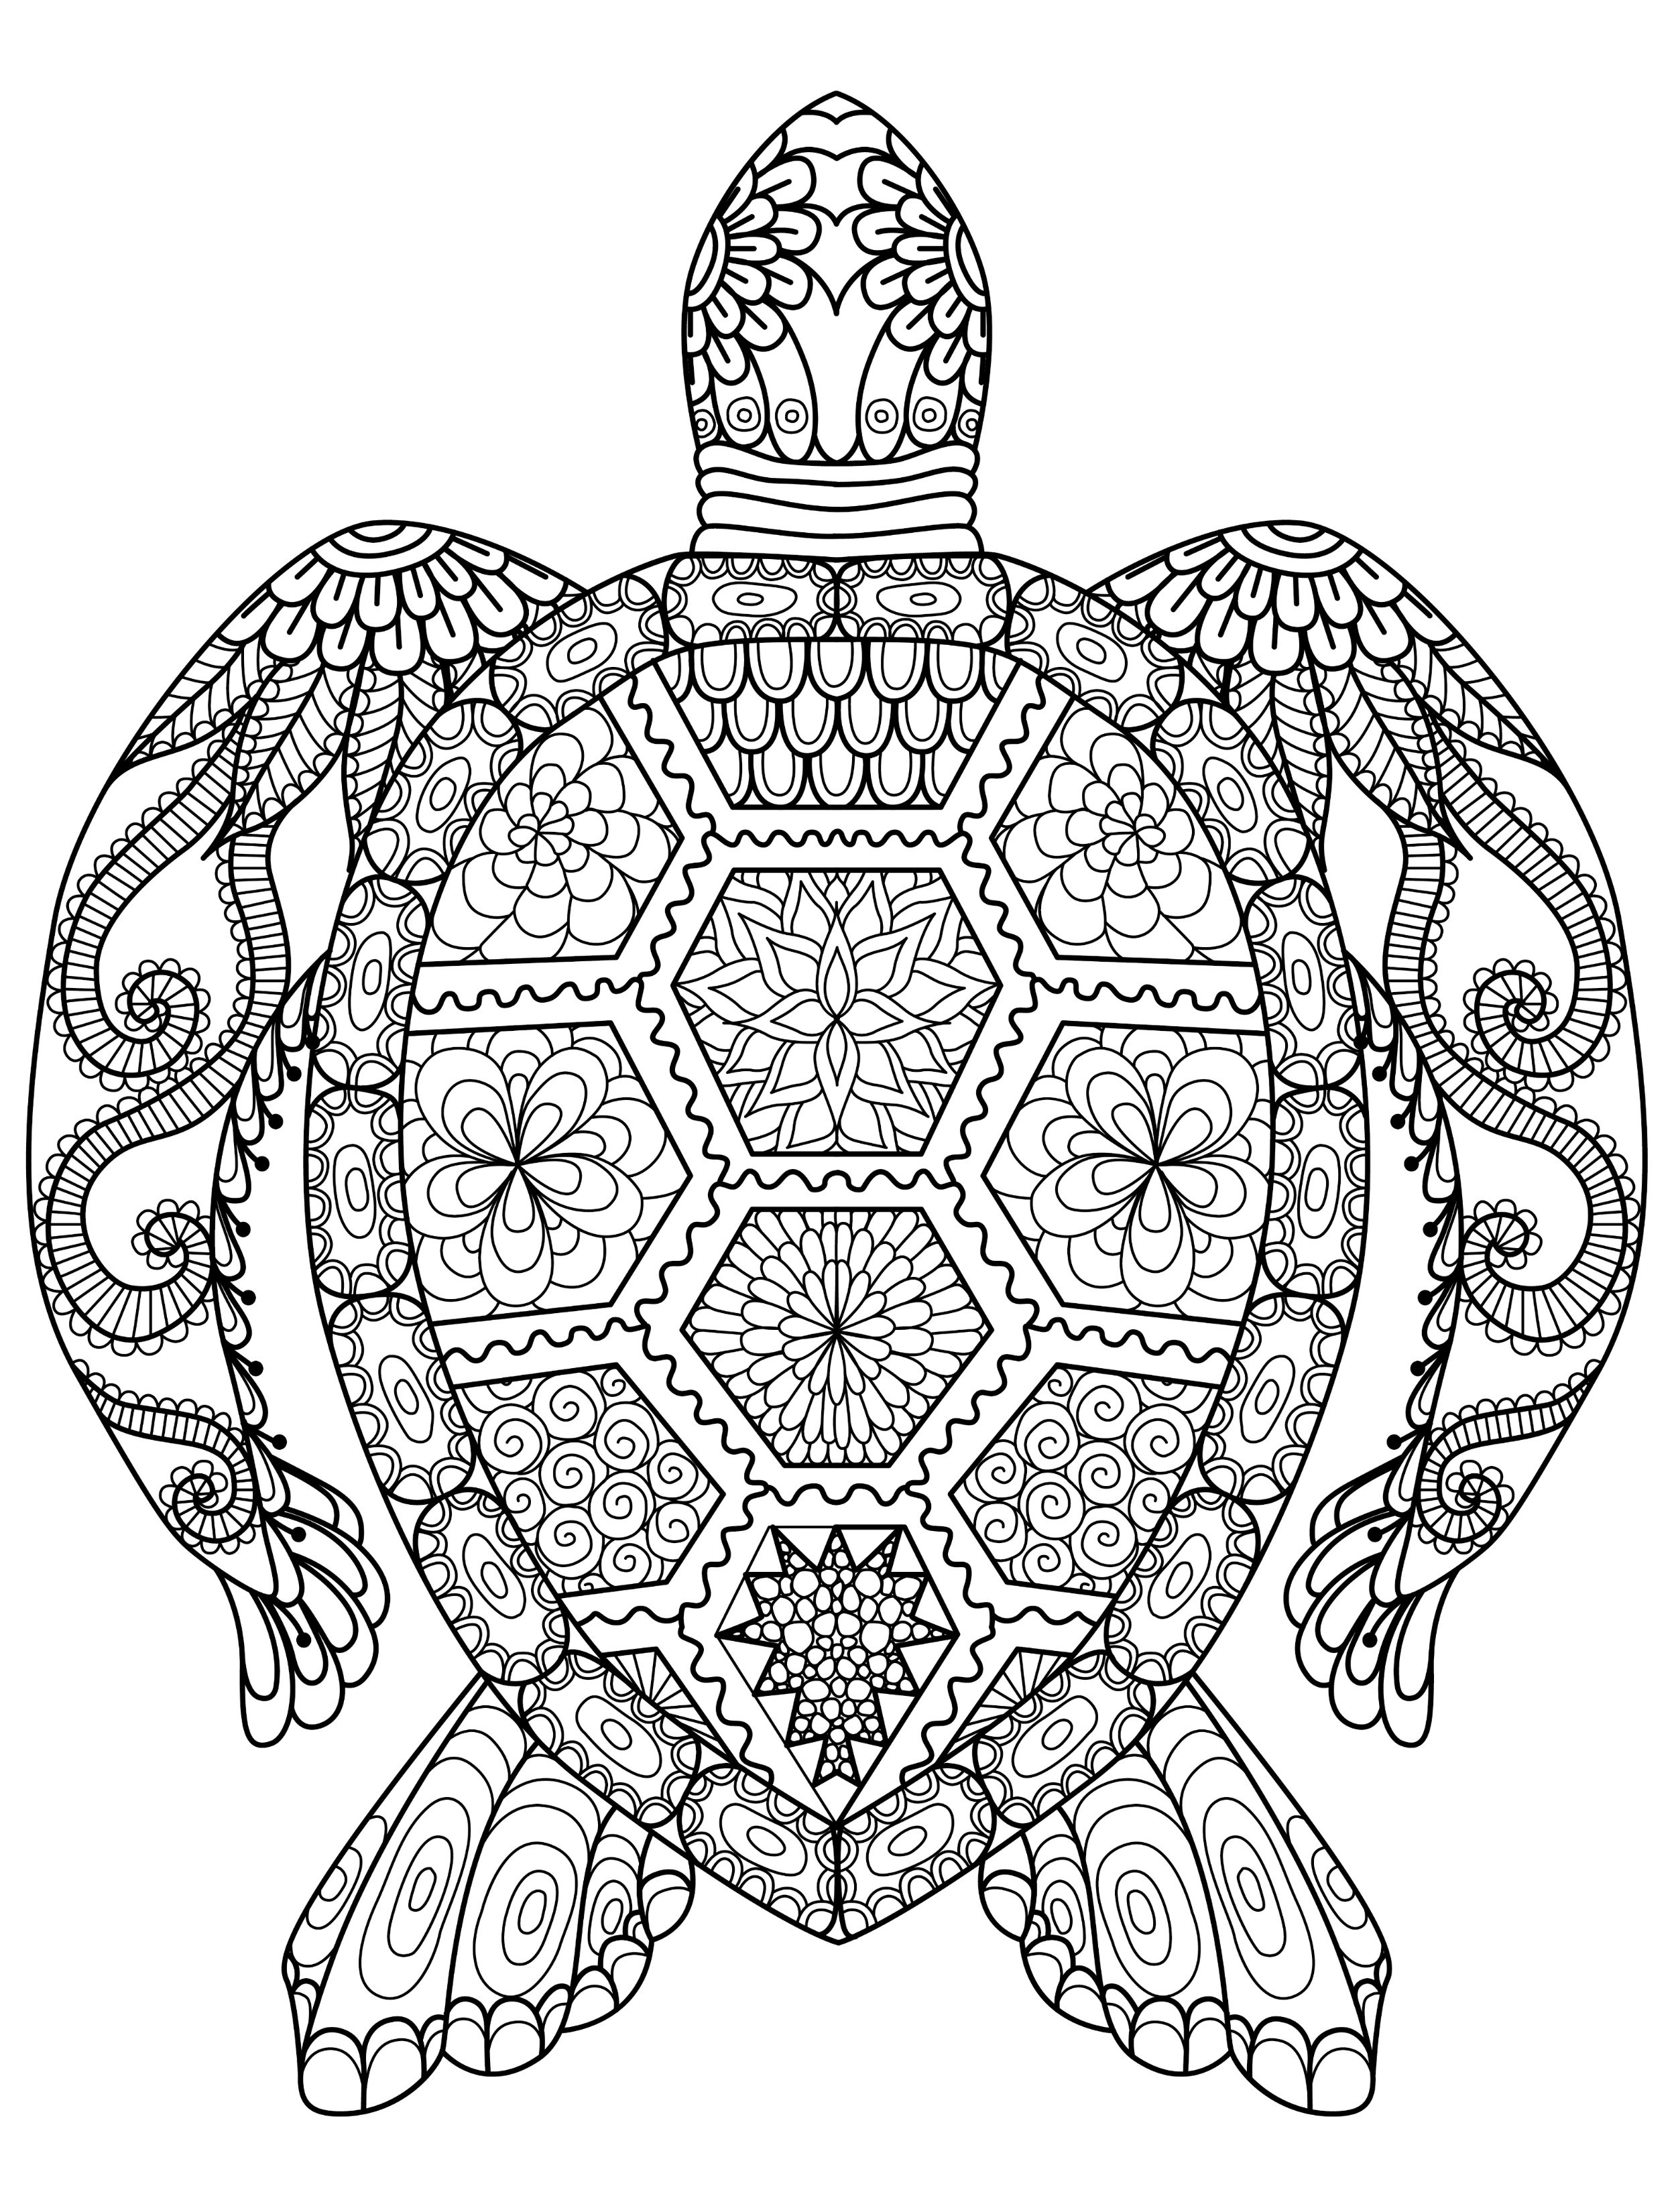 coloring adults printable adult coloring pages animals best coloring pages for kids coloring adults printable